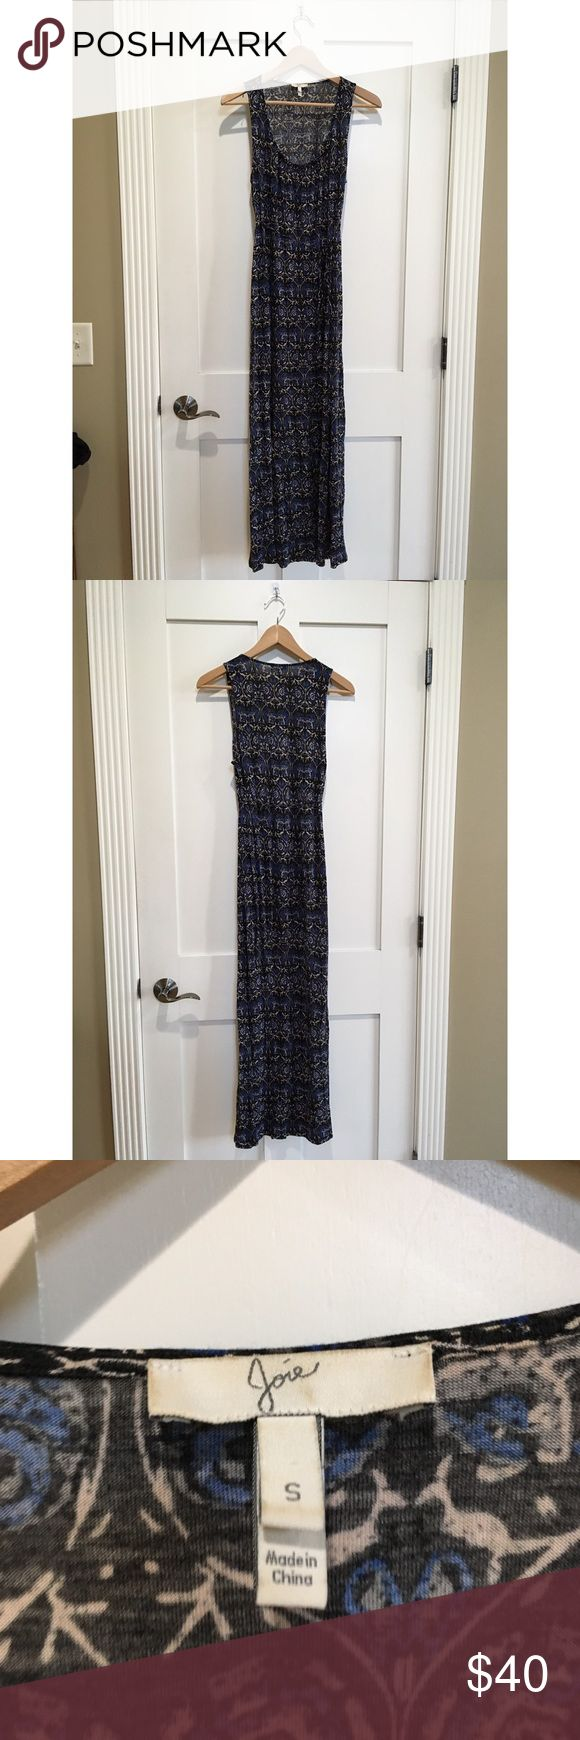 "Joie Boho Bohemian Maxi Dress Printer Summer Armpit to armpit 16"" Length 53"" Care tag has been removed  Cotton blend Great condition - no holes, stains, or rips.  Tie waist detail Scoop Neck Joie Dresses Maxi"